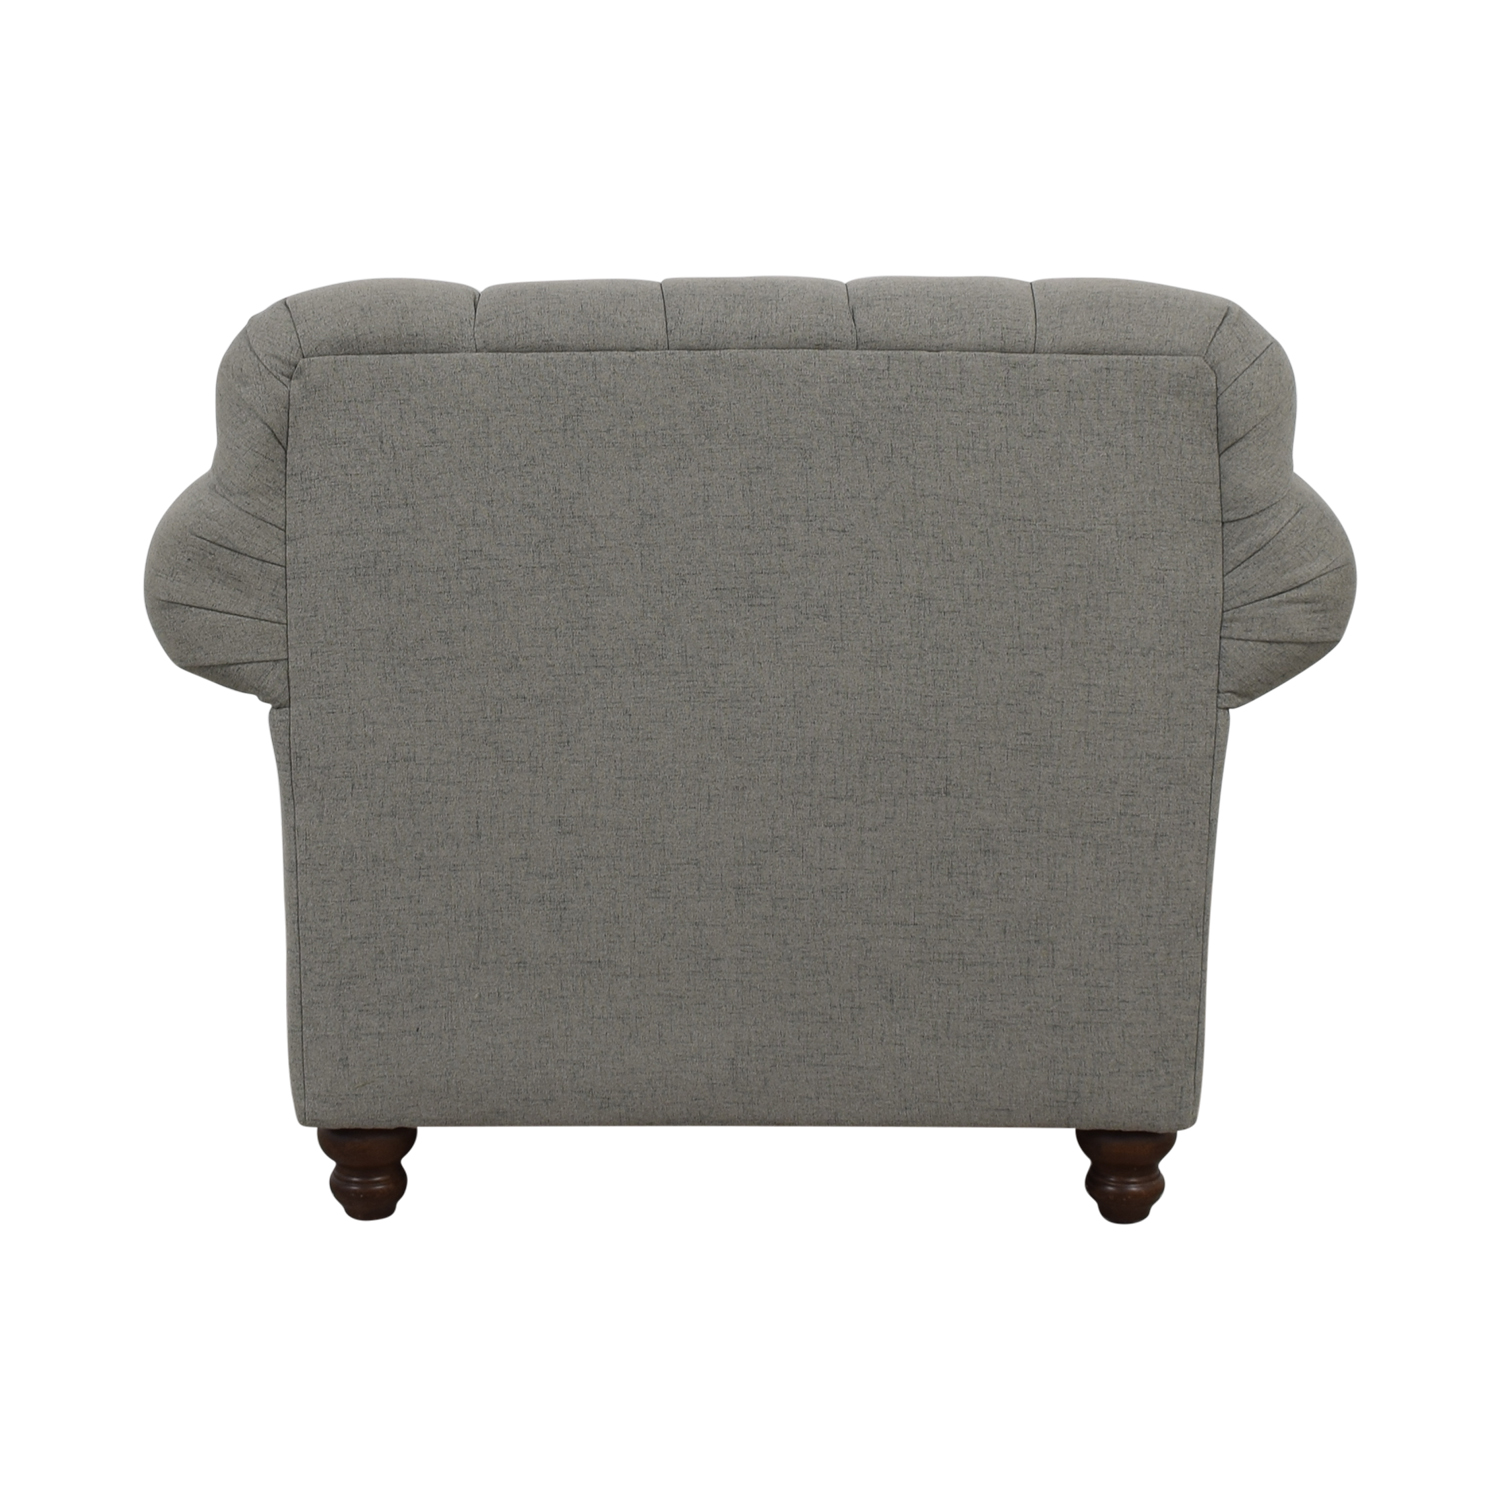 Klaussner Klaussner Distinctions Grey Tufted Nailhead Accent Chair gray